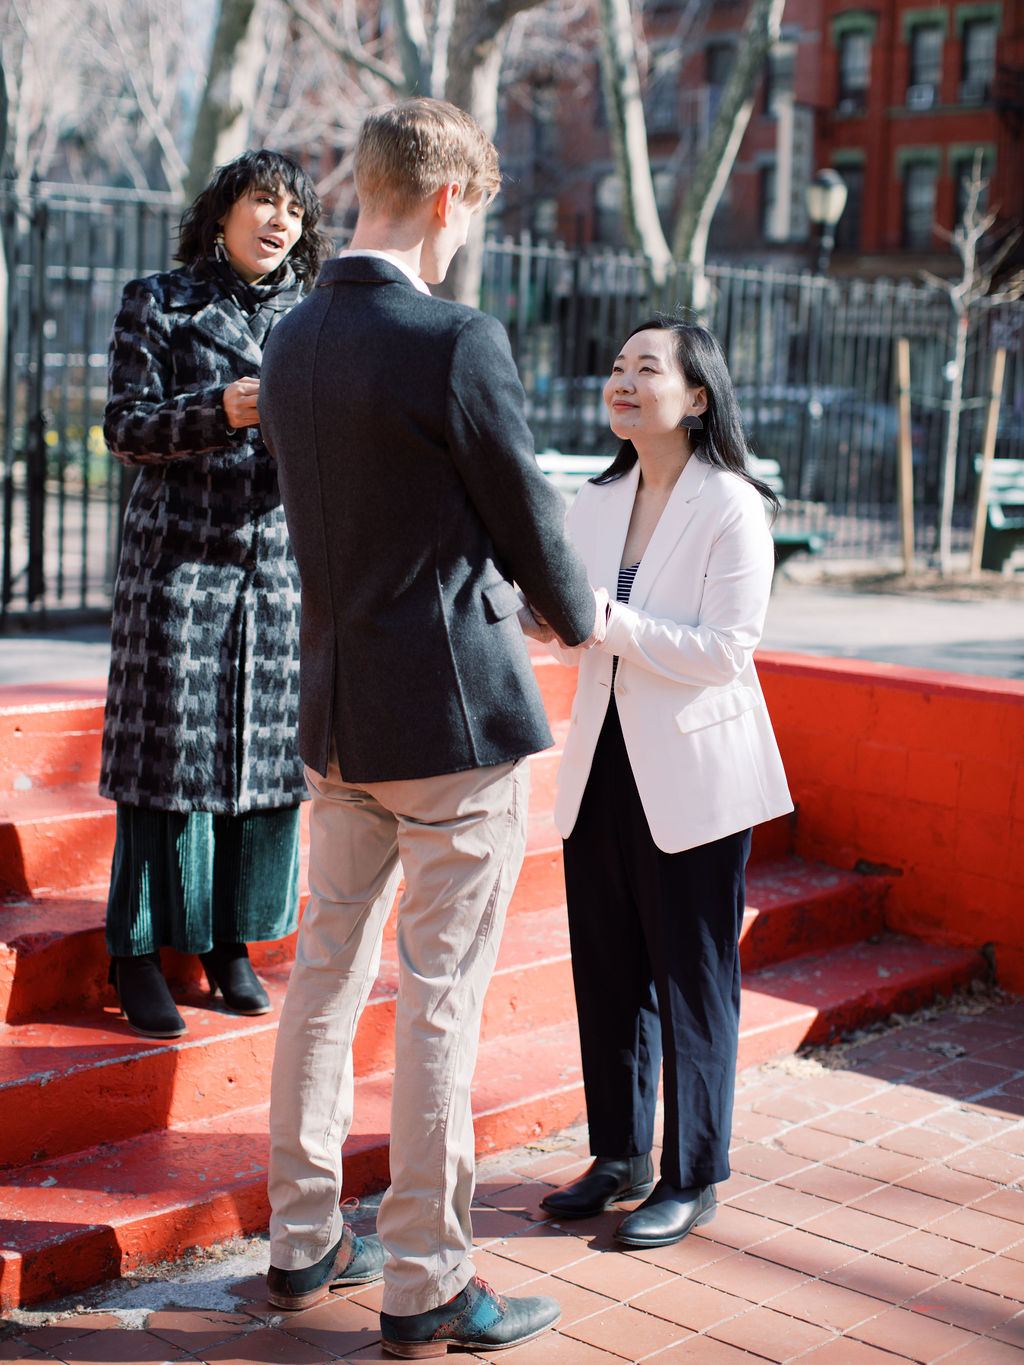 NYC Elopement-Judson Rappaport-02